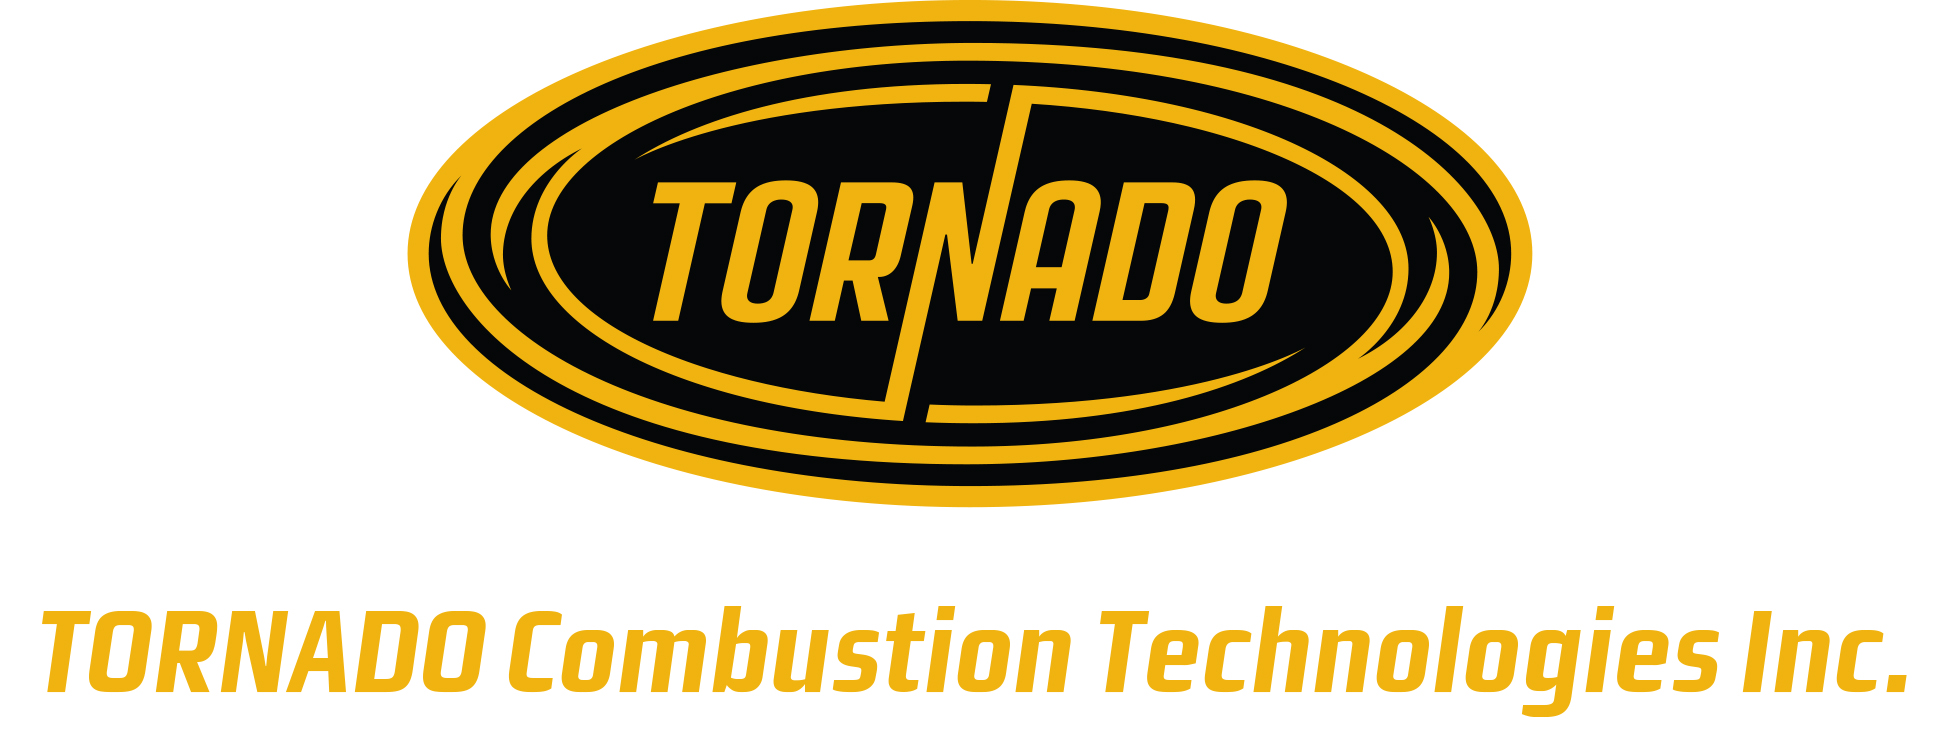 tornado with text 4 C